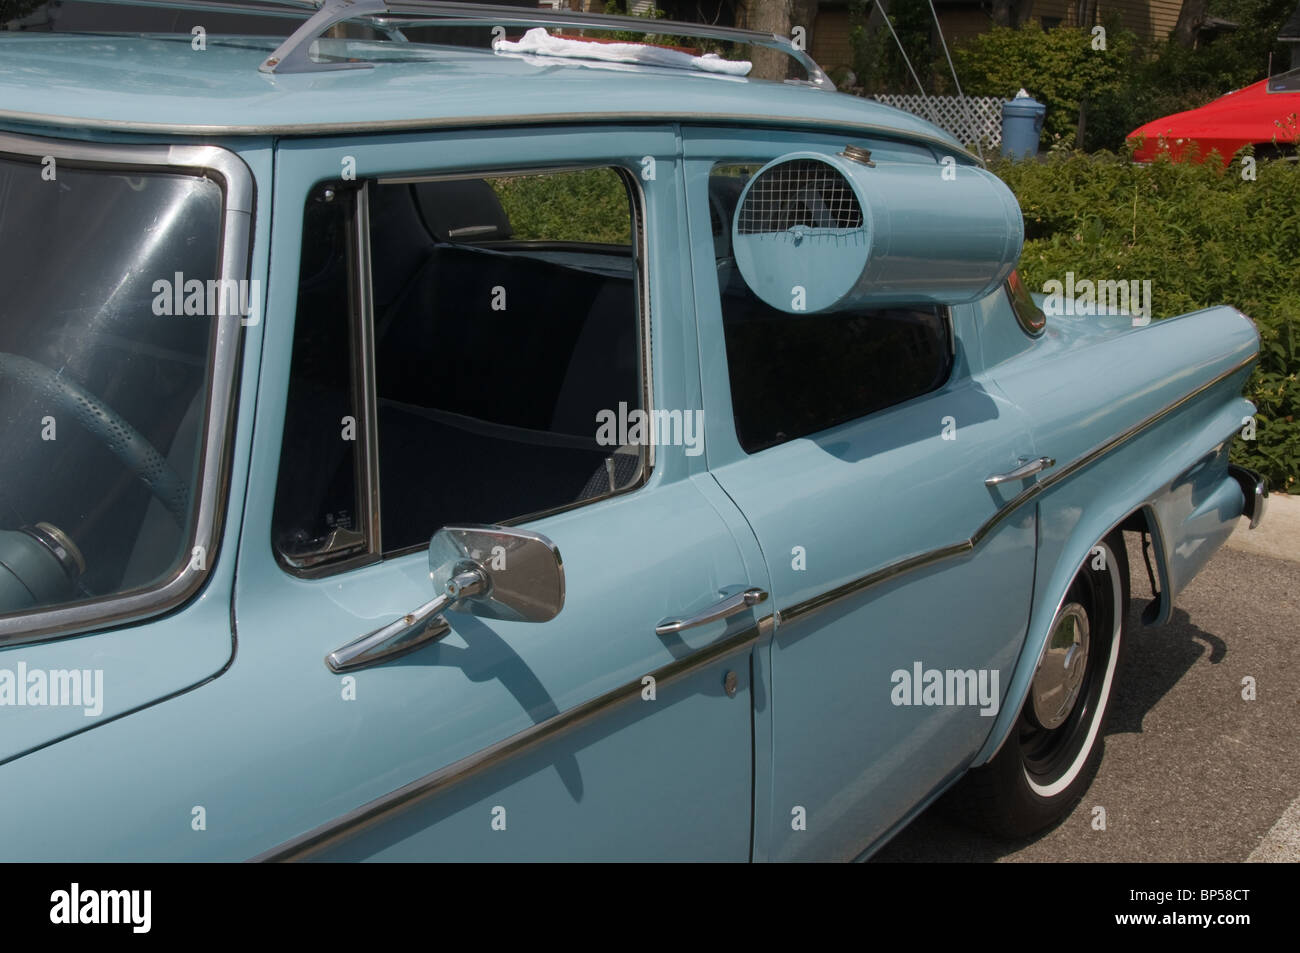 Outside the car air conditioner - Stock Image